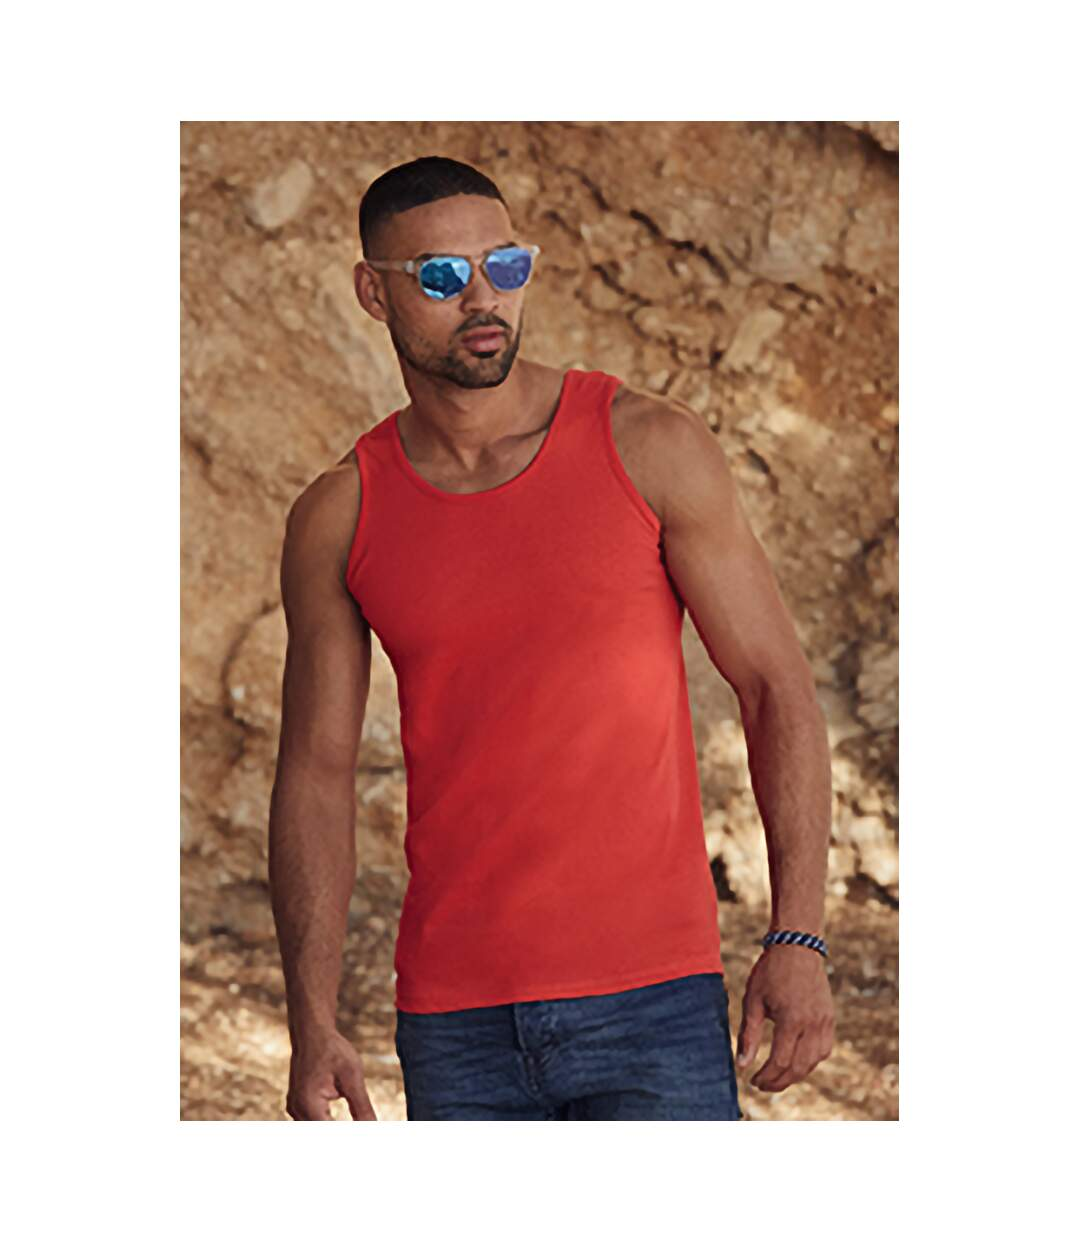 Fruit Of The Loom Mens Athletic Sleeveless Vest / Tank Top (Red) - UTBC341